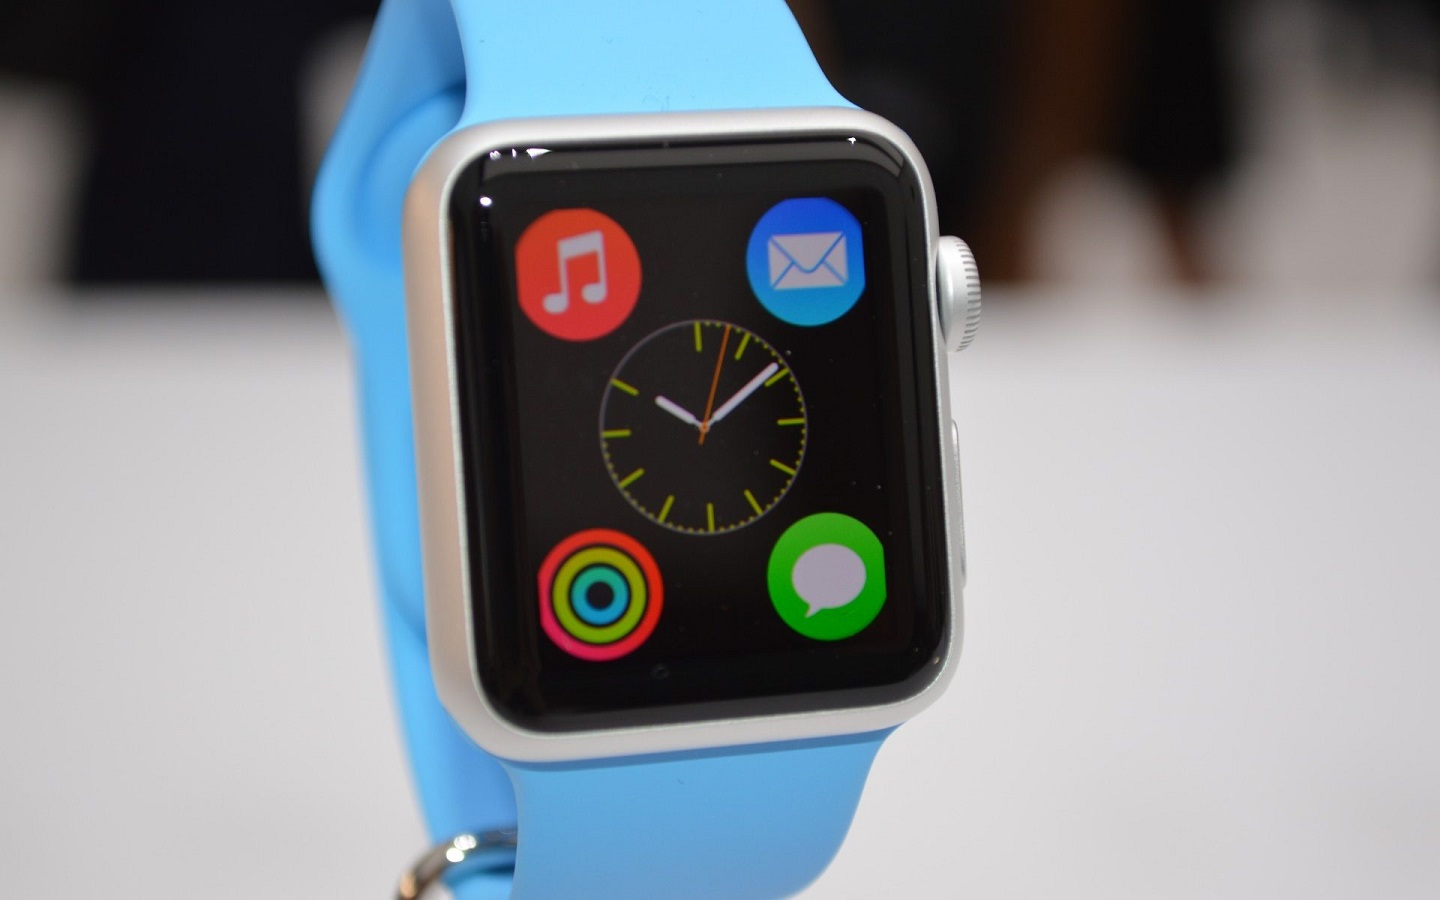 How to develop an app for Apple Watch